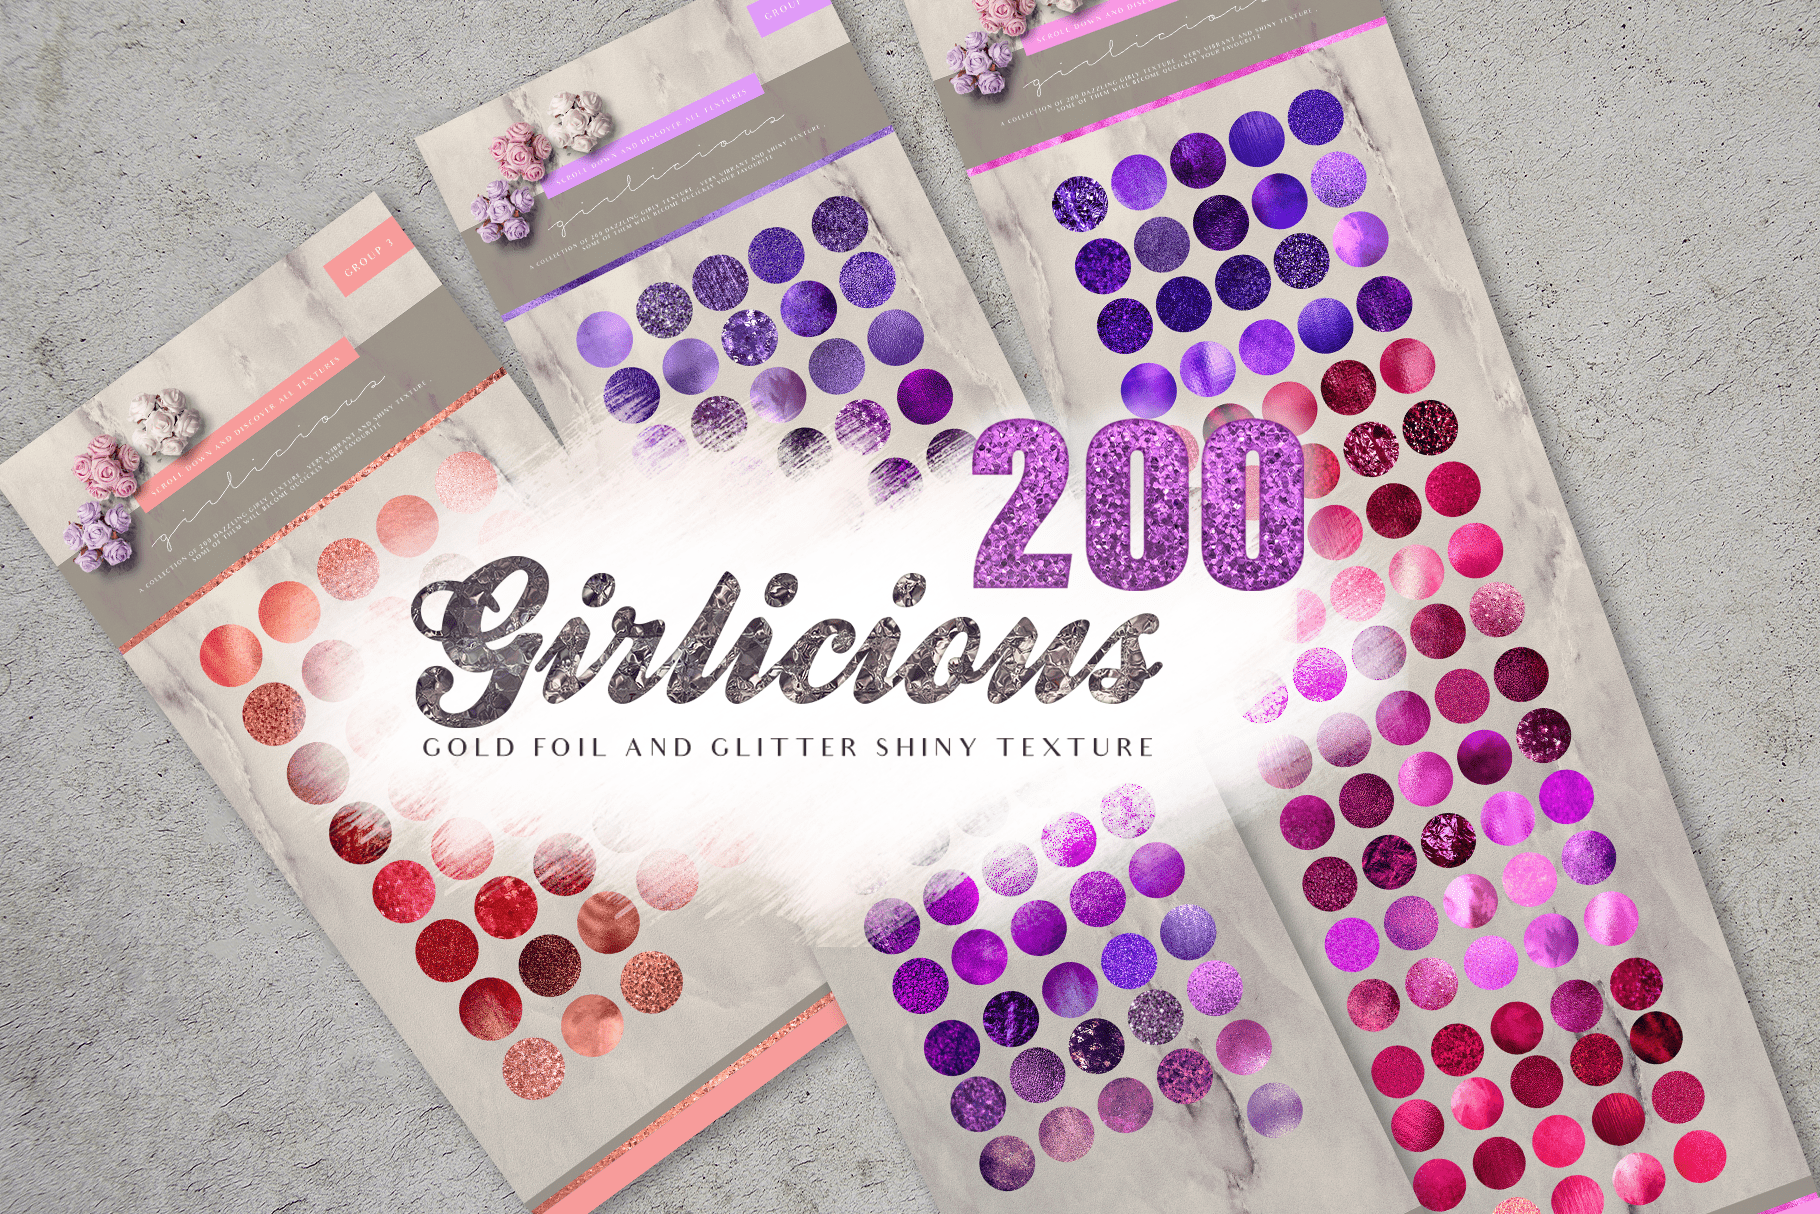 200 Girly Gold Pink Textures - $15 - girlicious preview final image1